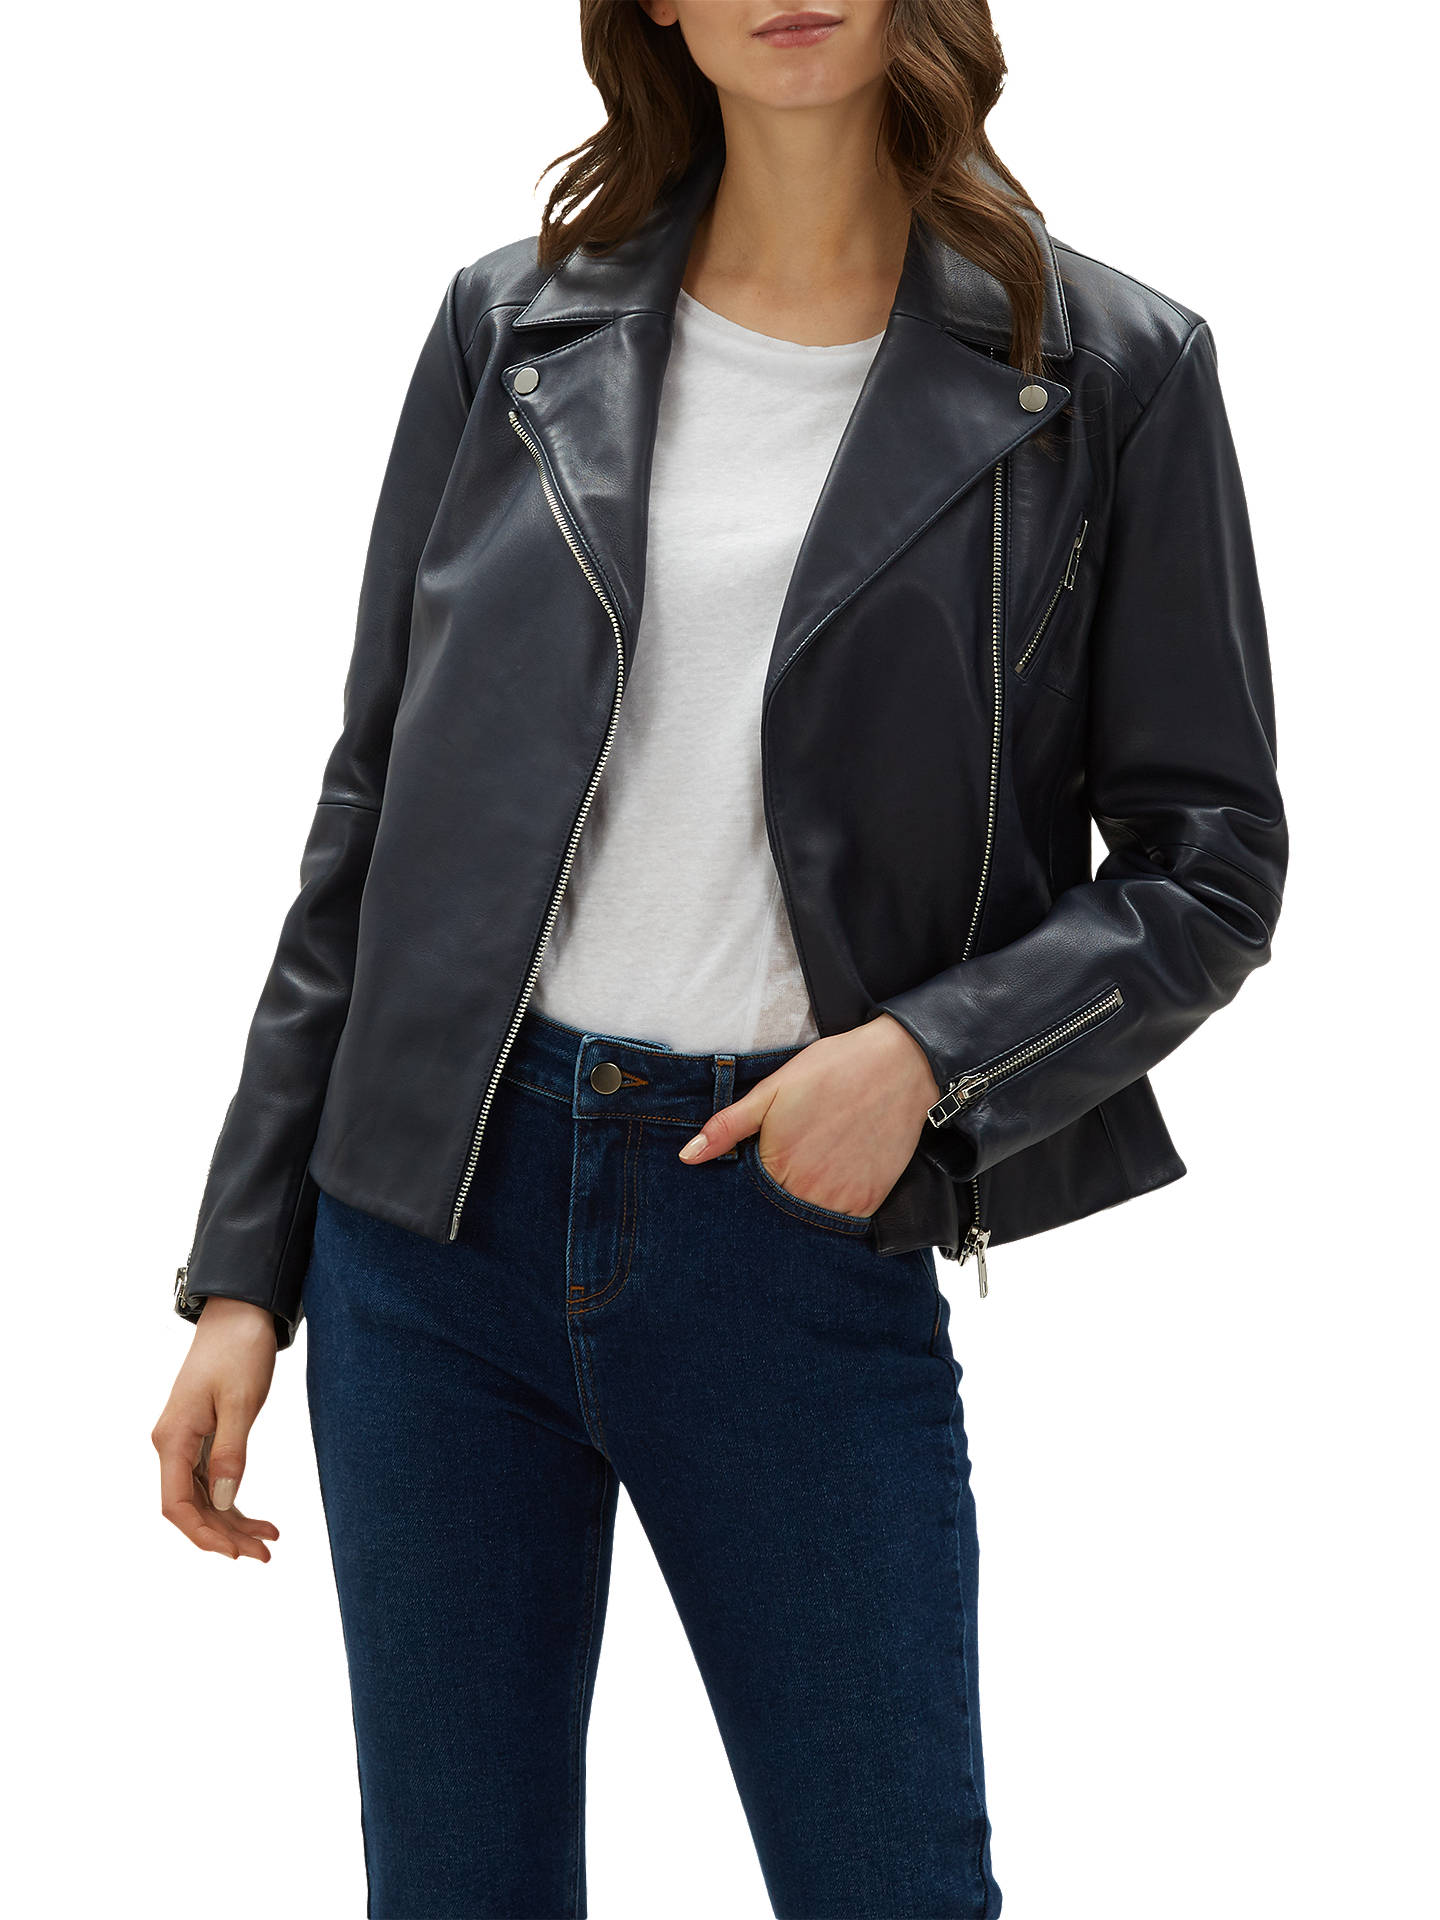 world-wide free shipping shop for official new concept Jaeger Essential Casual Leather Biker Jacket, Navy at John ...